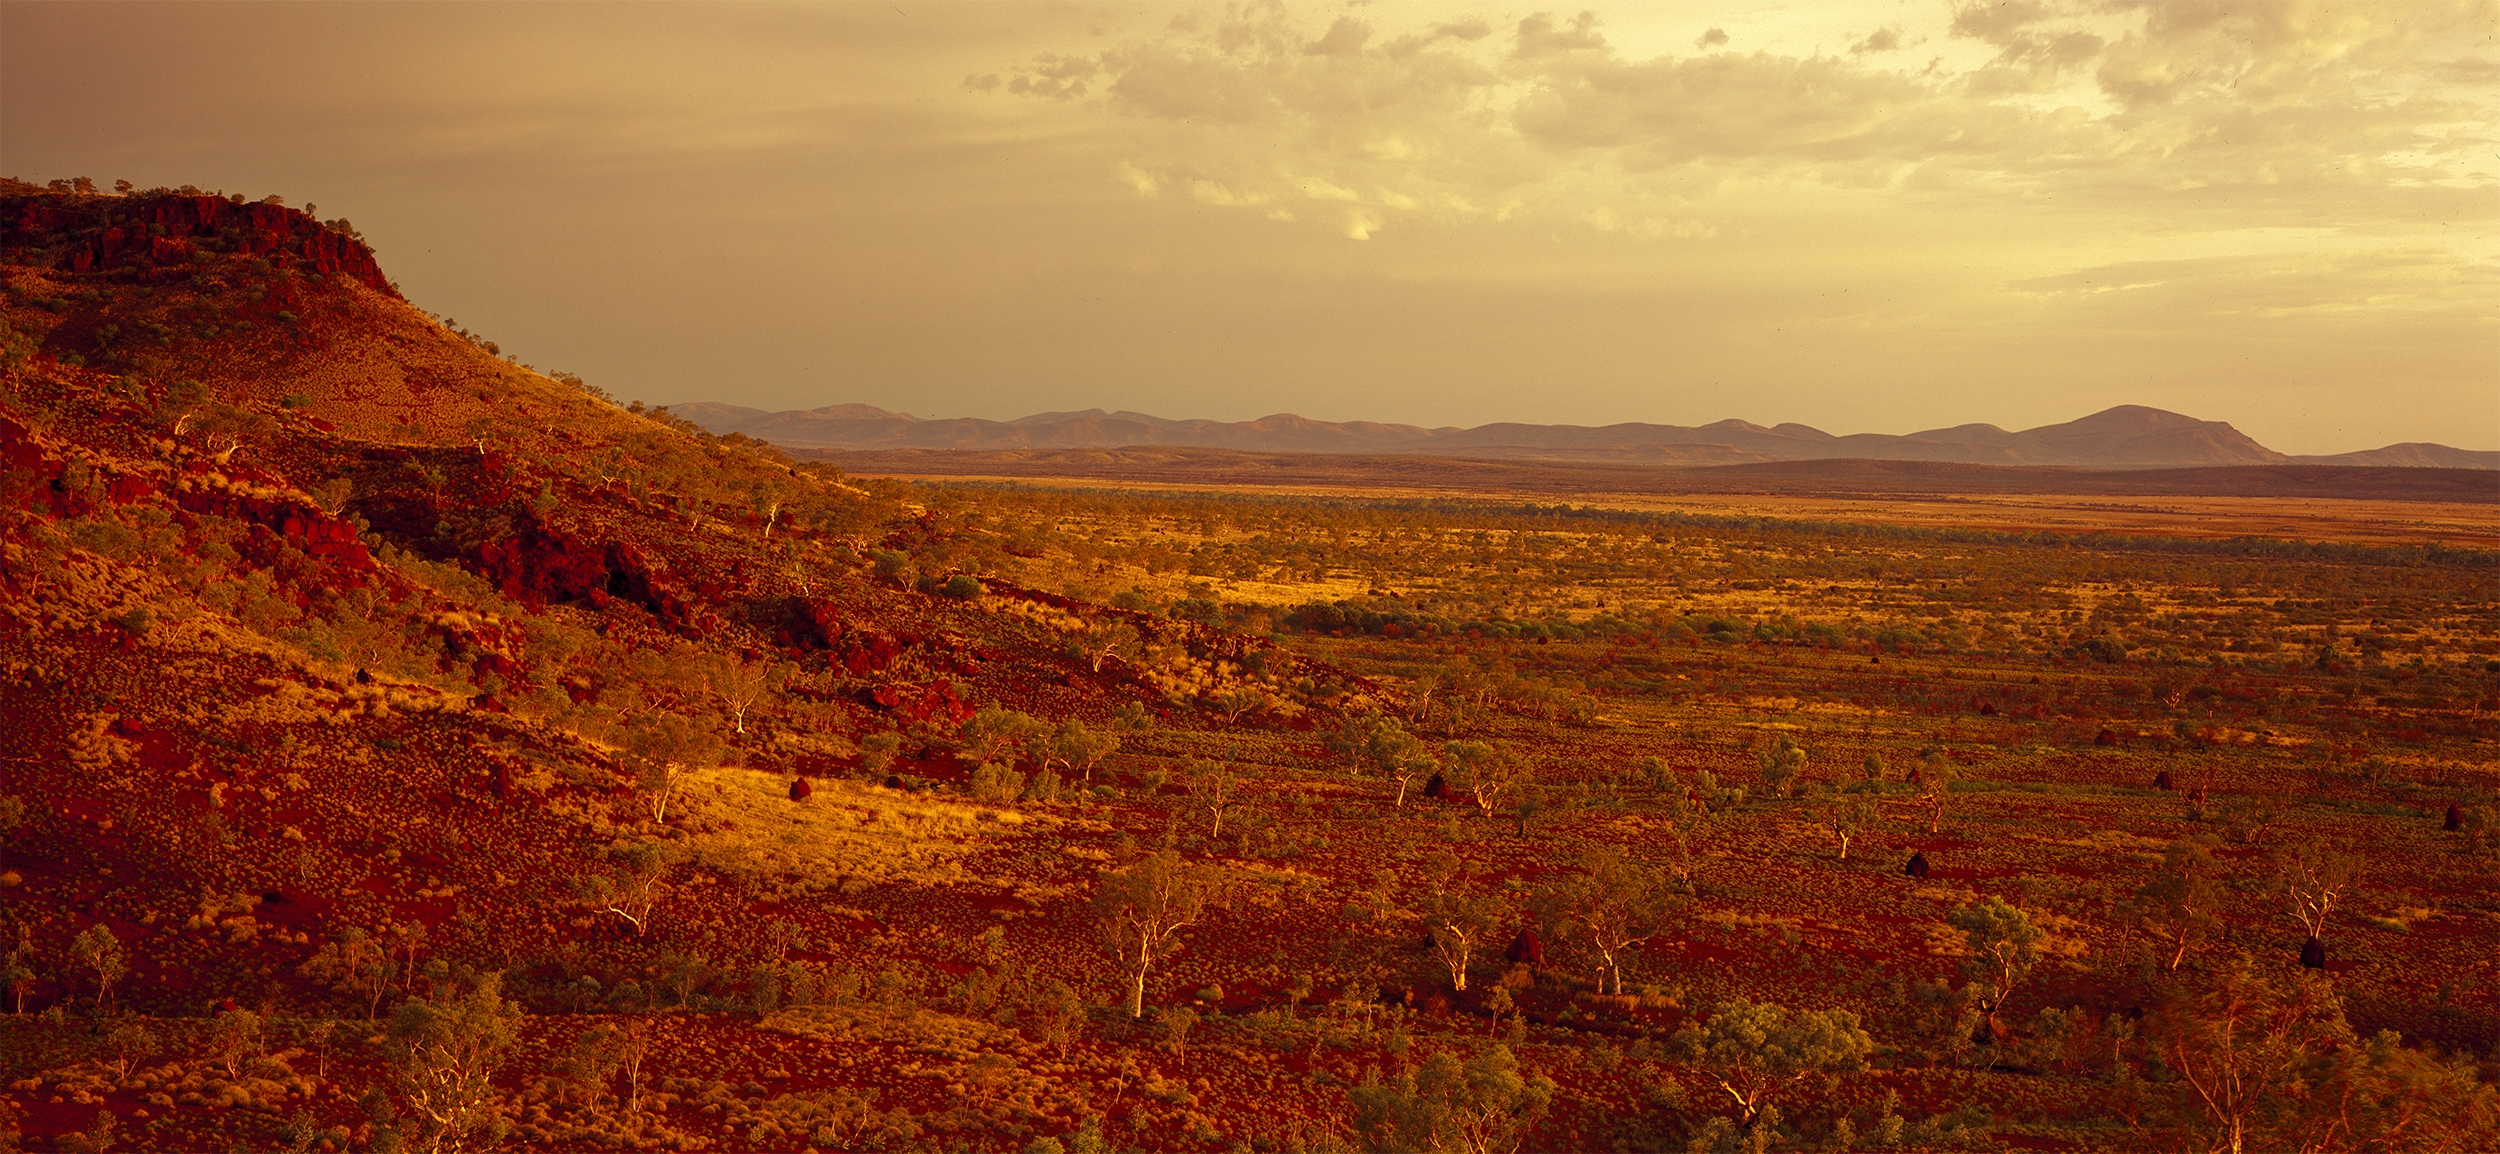 View Looking Toward Mt Brockman Across the Namuldi Flats, Hamersley Range, Western Australia, 2015. Edition of 3.